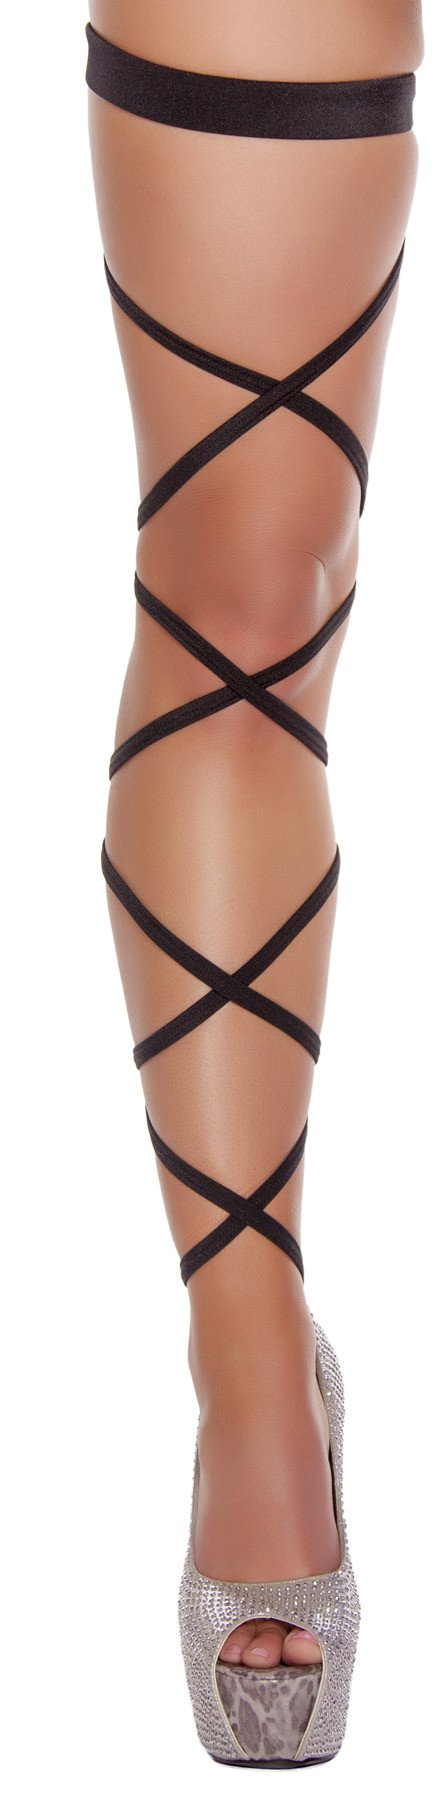 3231 - Pair of Leg Strap with Attached Thigh Garter